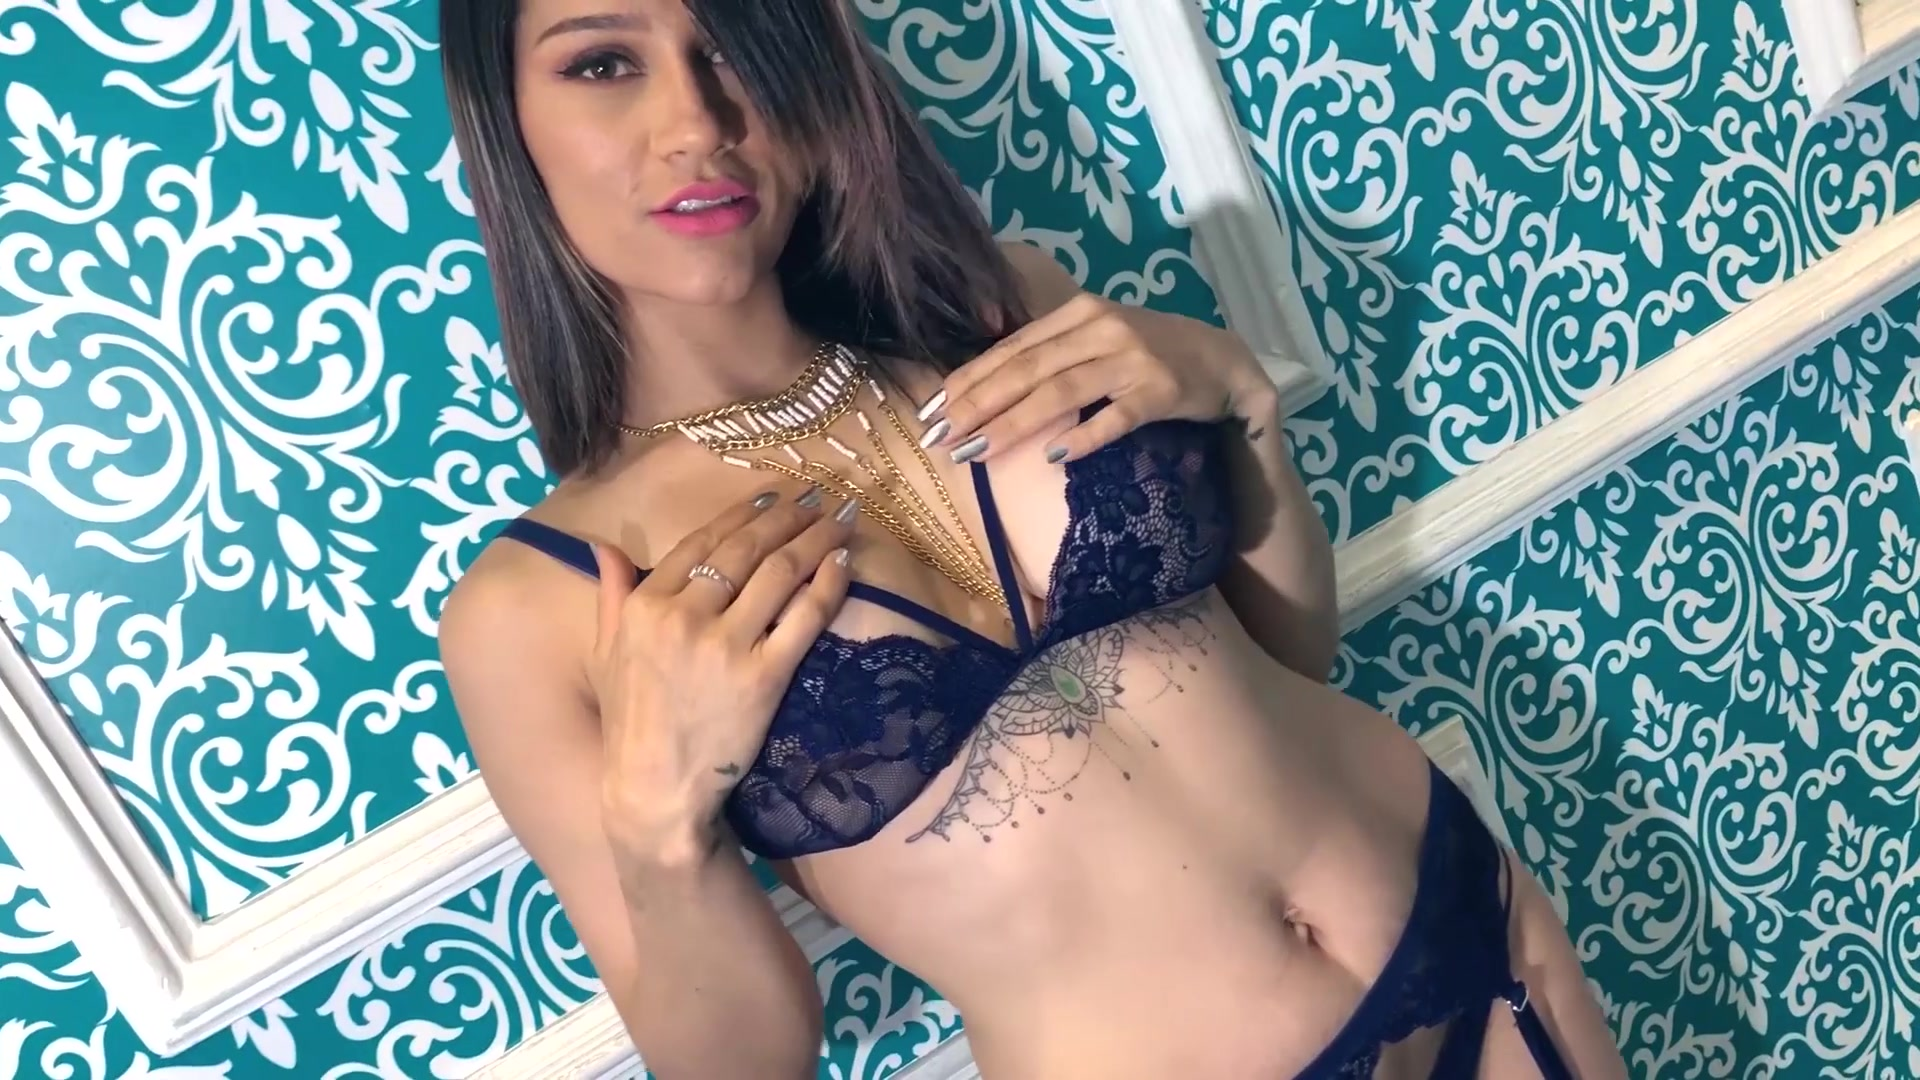 Incredibly sexy slender SusanaTorres is showing off her body in hot blue lace lingerie